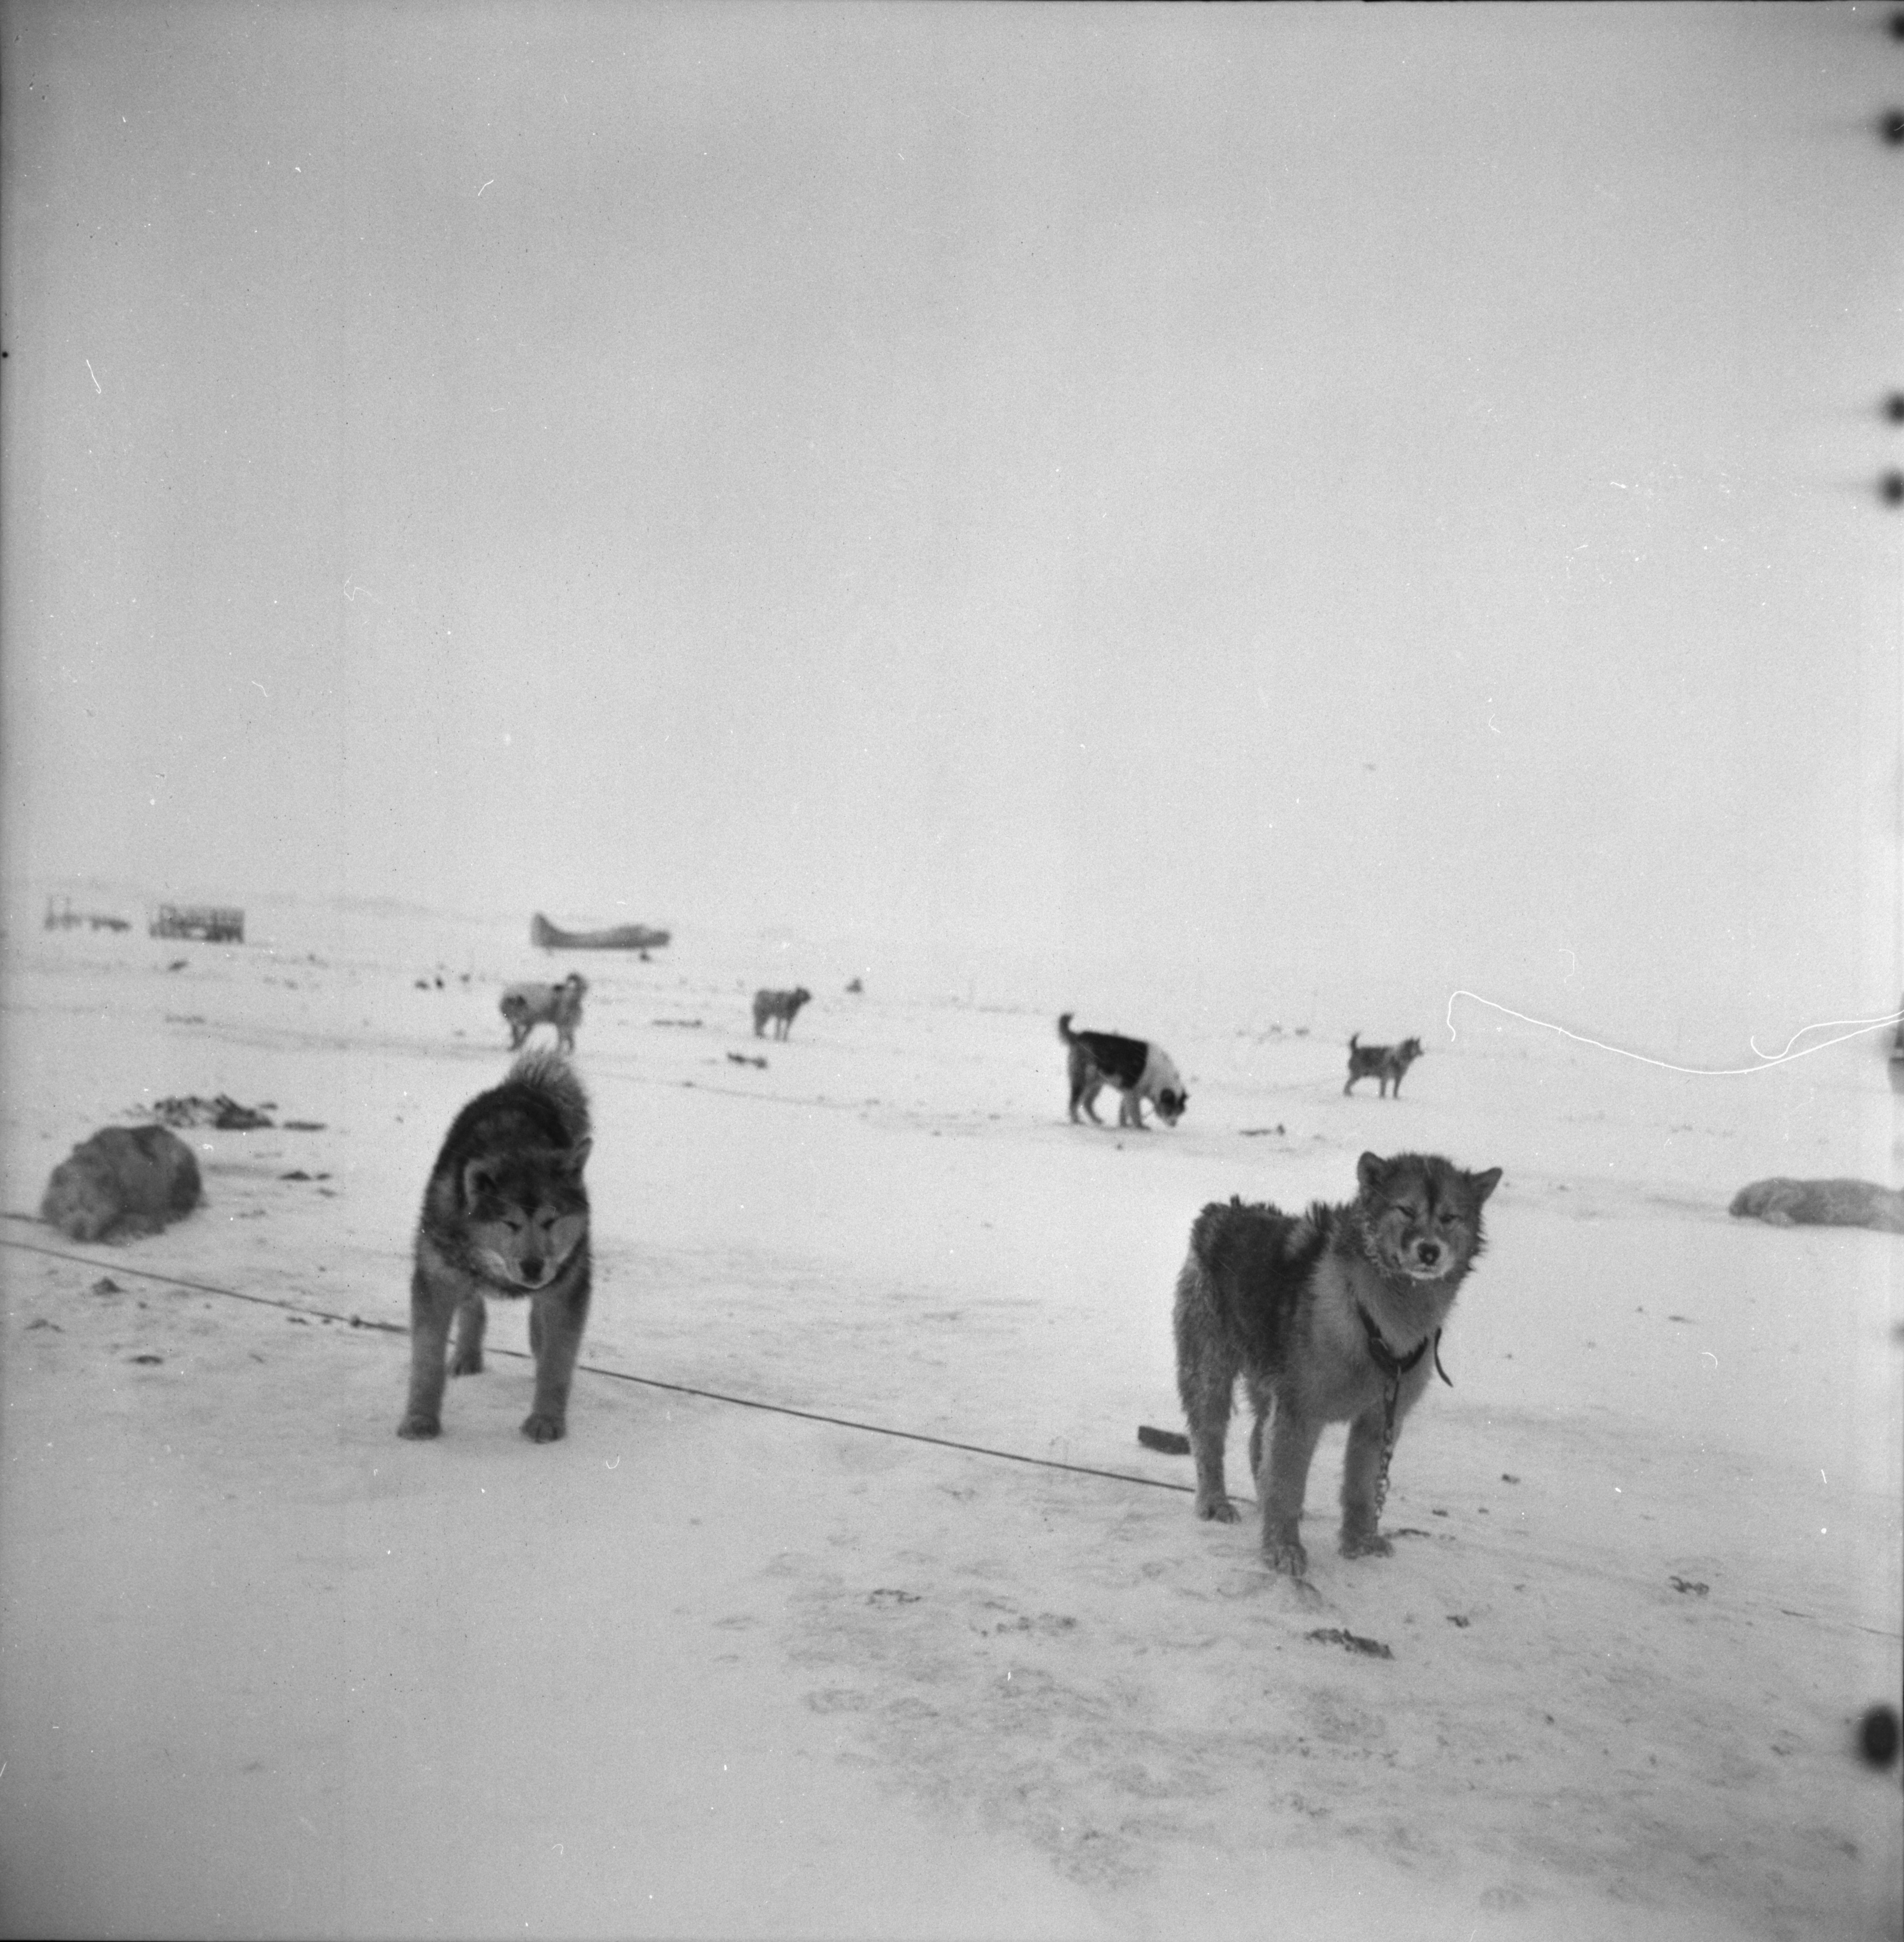 Sled Dogs, U-M Research Trip to Antarctica, November 1962 image